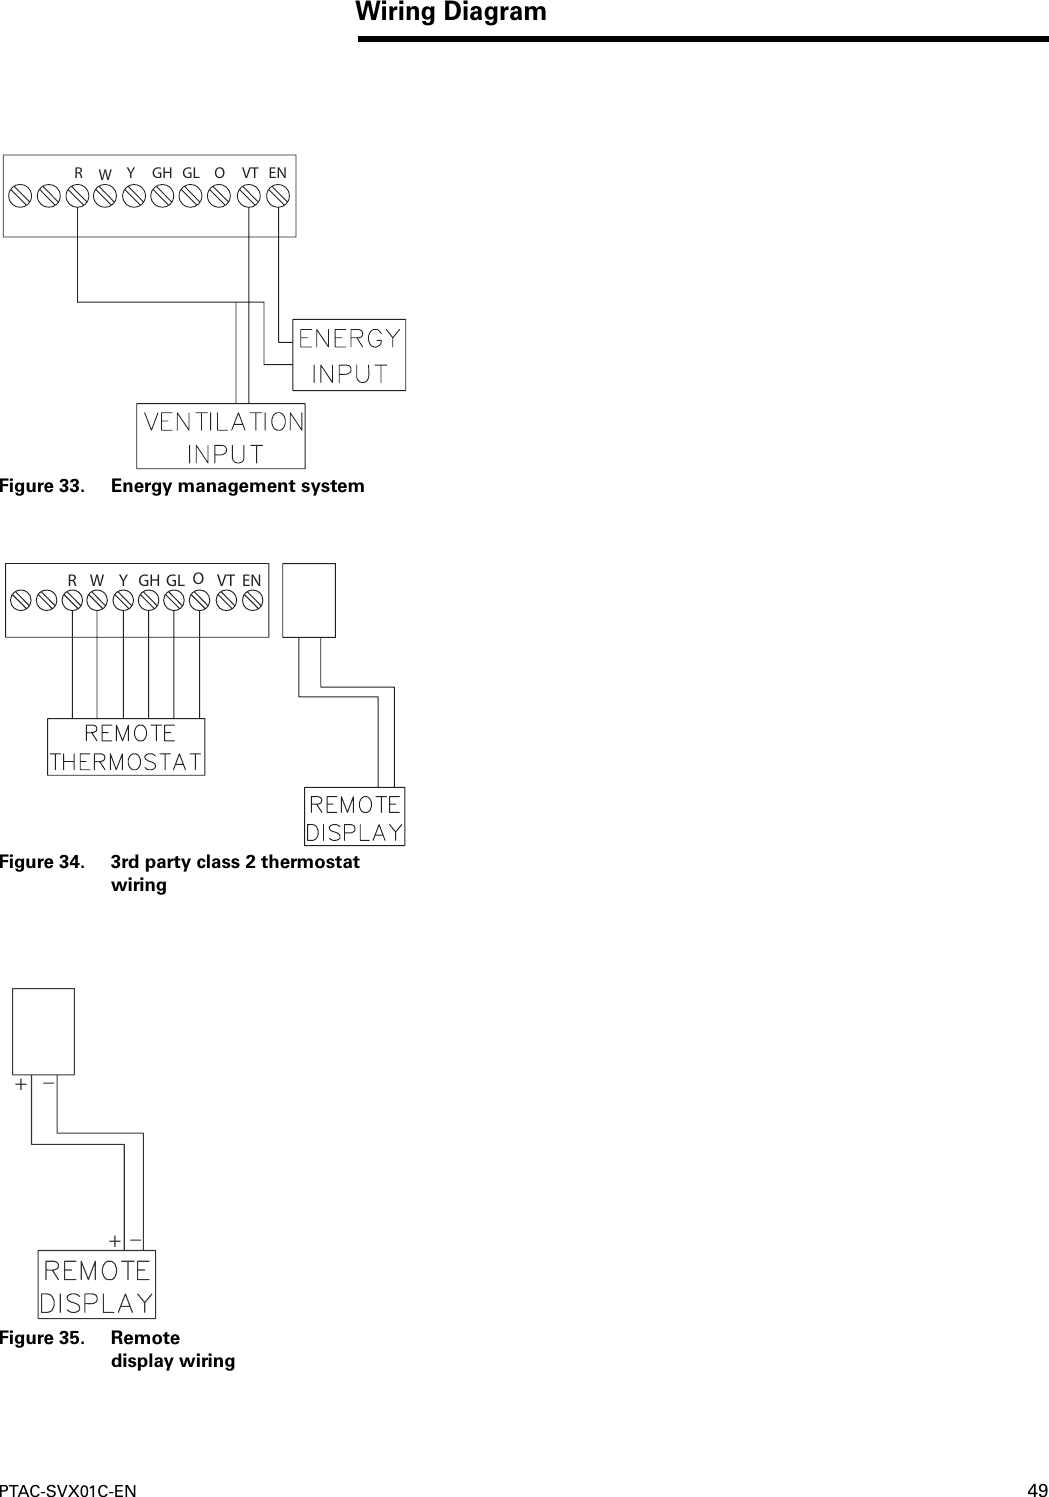 hight resolution of 20 amp wiring diagram for ptac